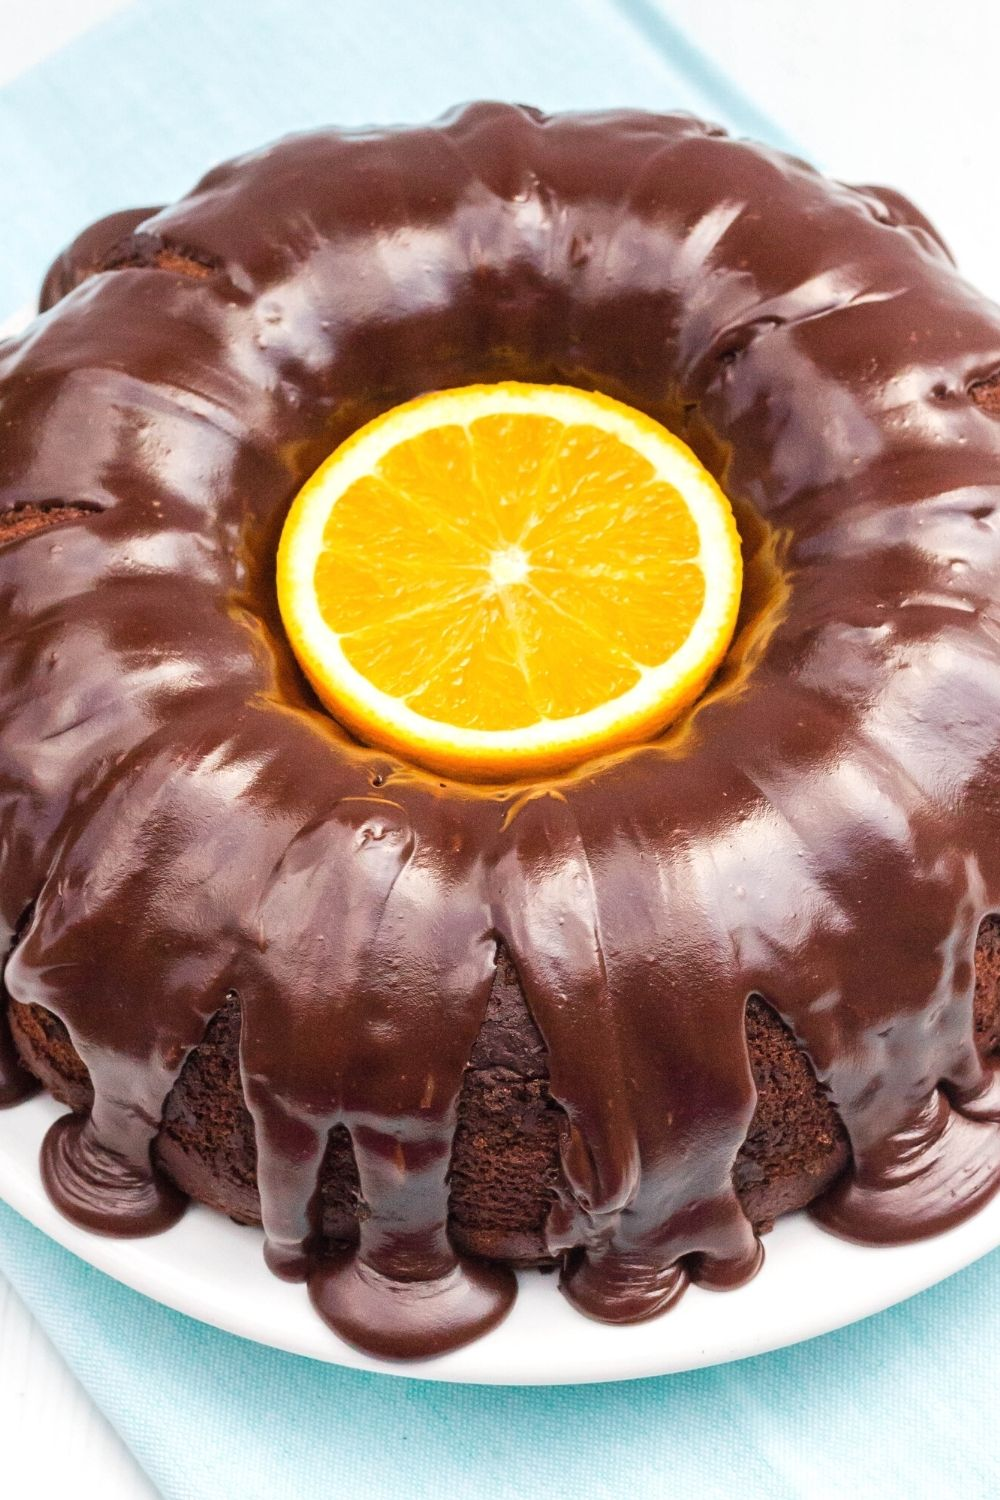 overhead view of a chocolate orange bundt cake with a halved orange in the center for garnish